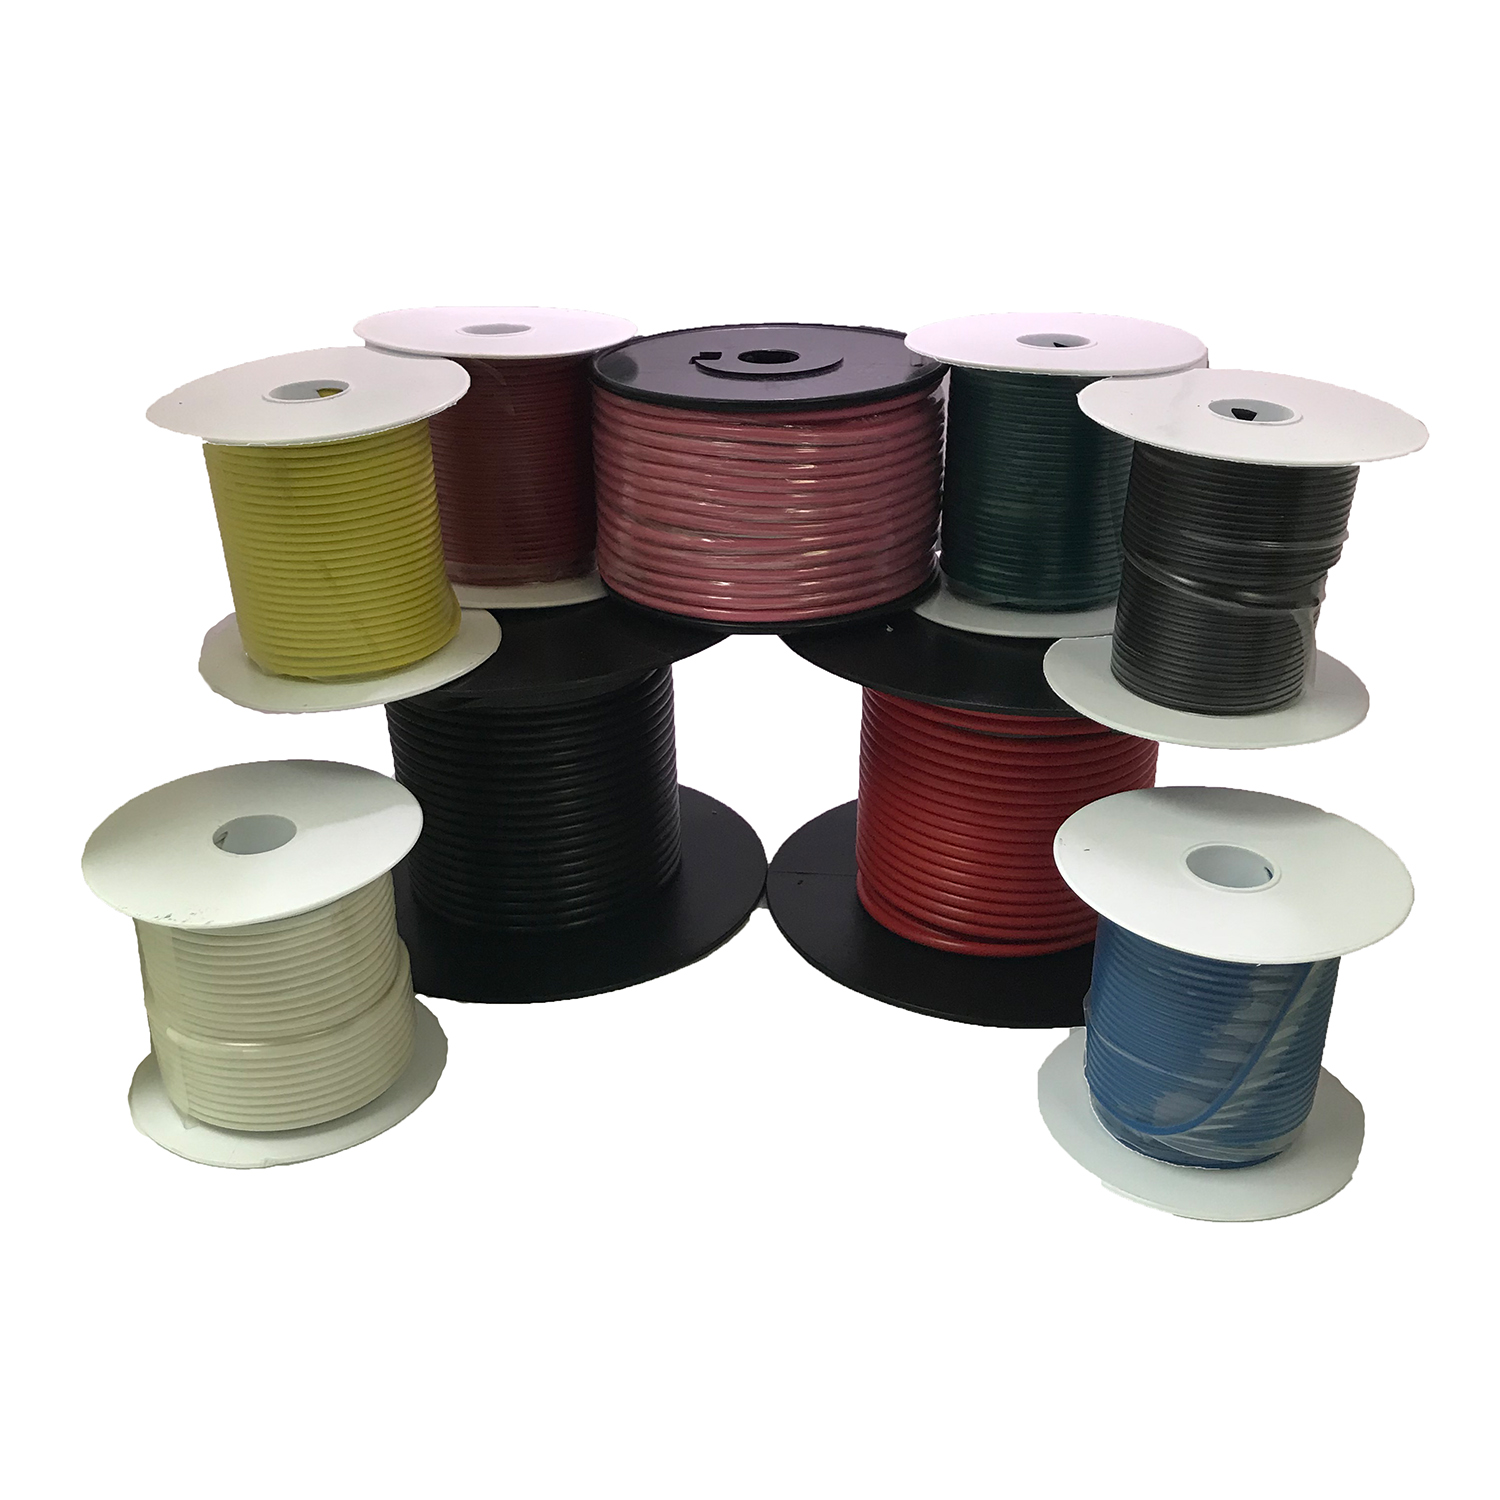 hight resolution of automotive primary wire spools and assortments